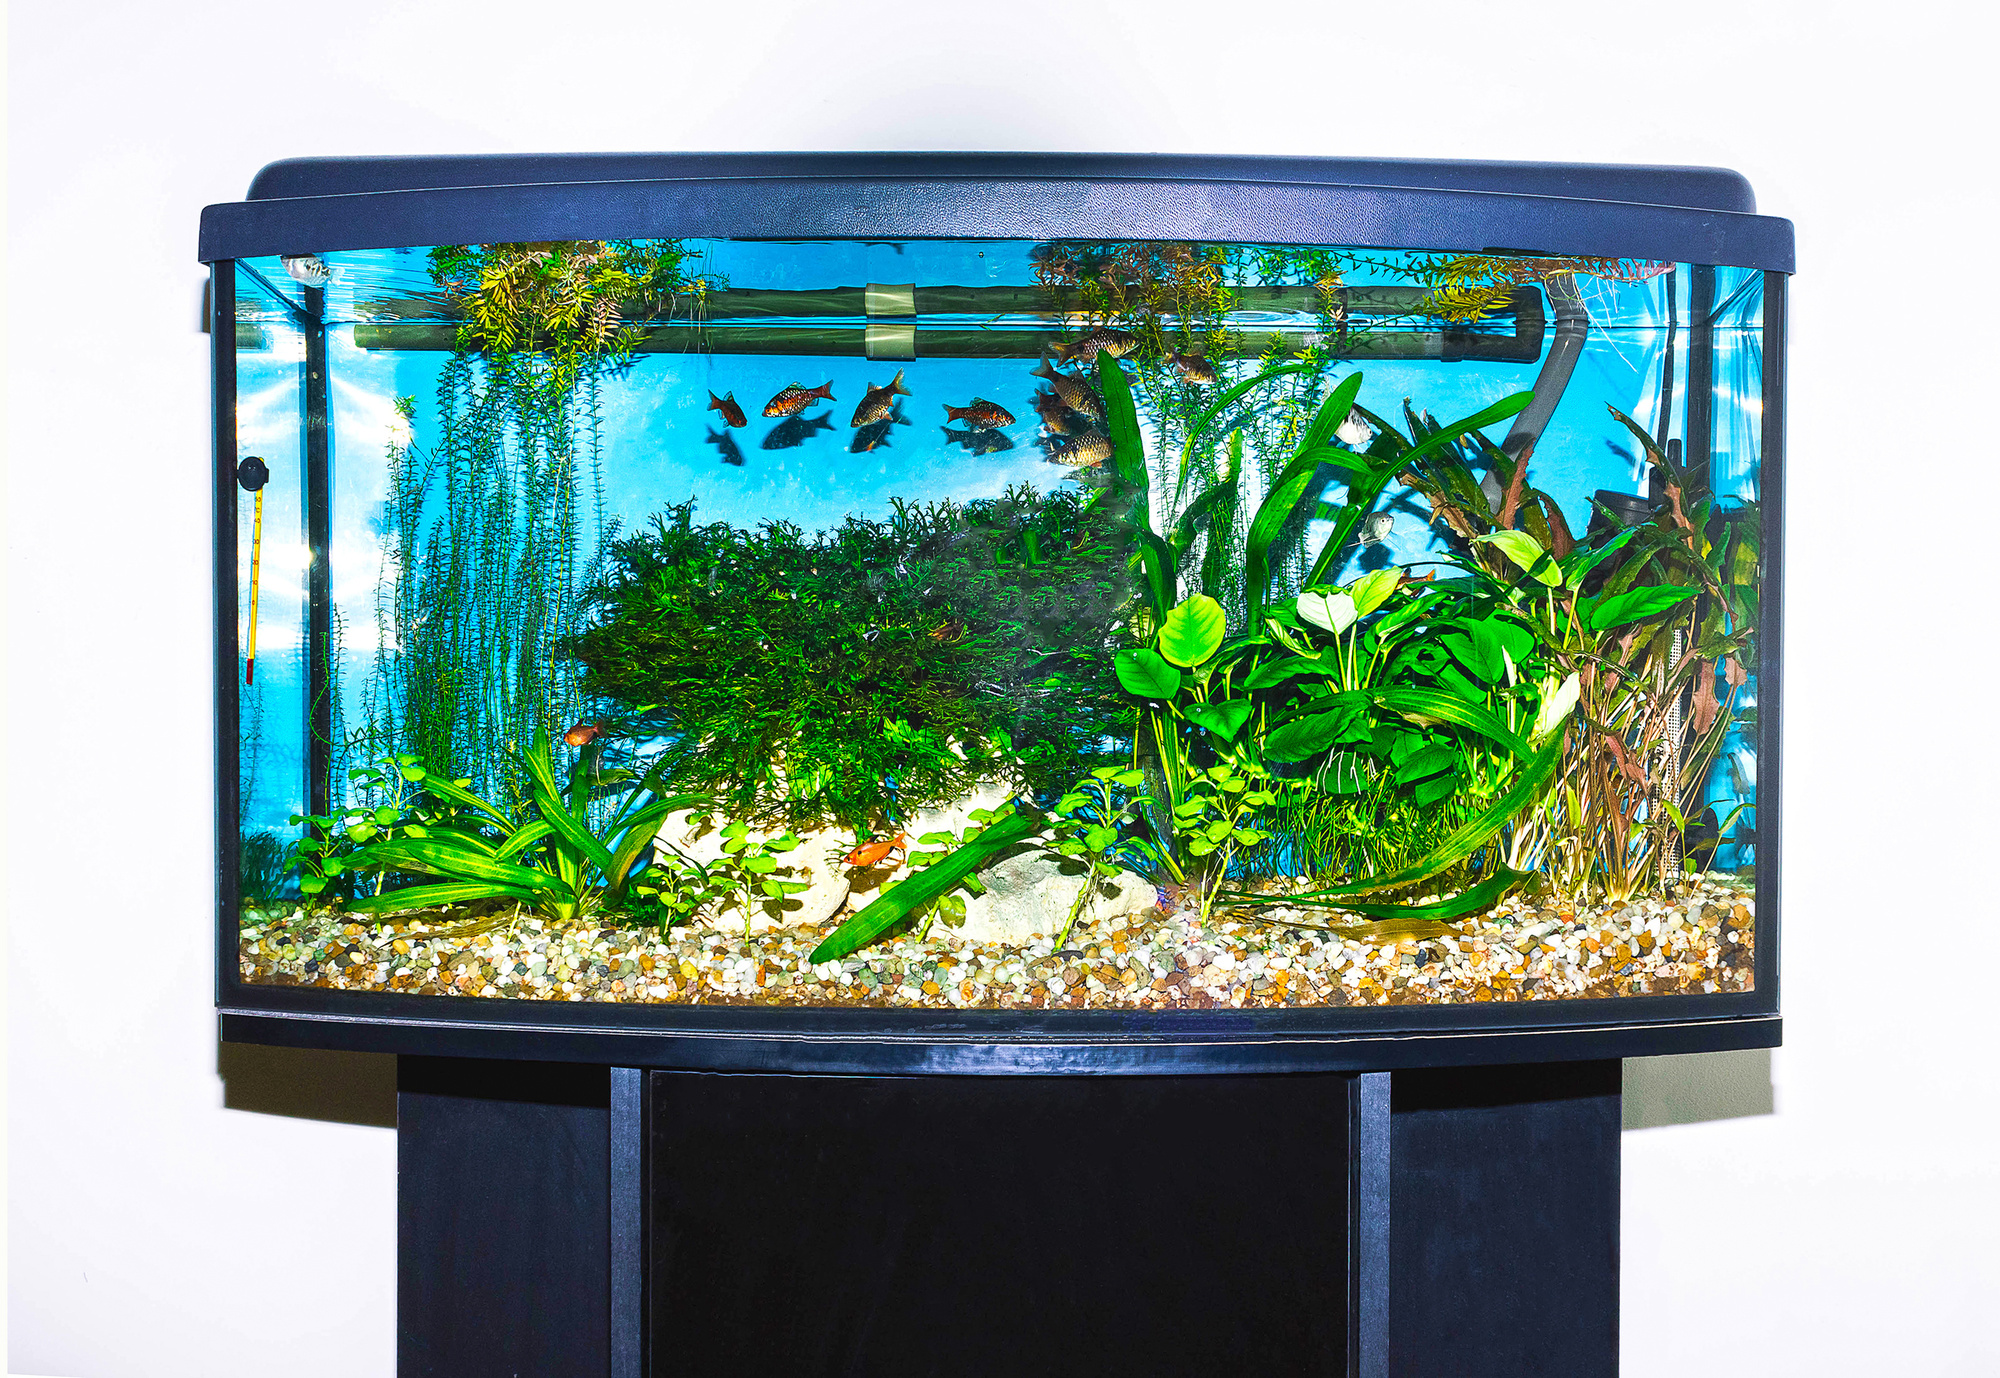 Top ten 20 gallon fish tanks for your home of office for Coolest fish in the world